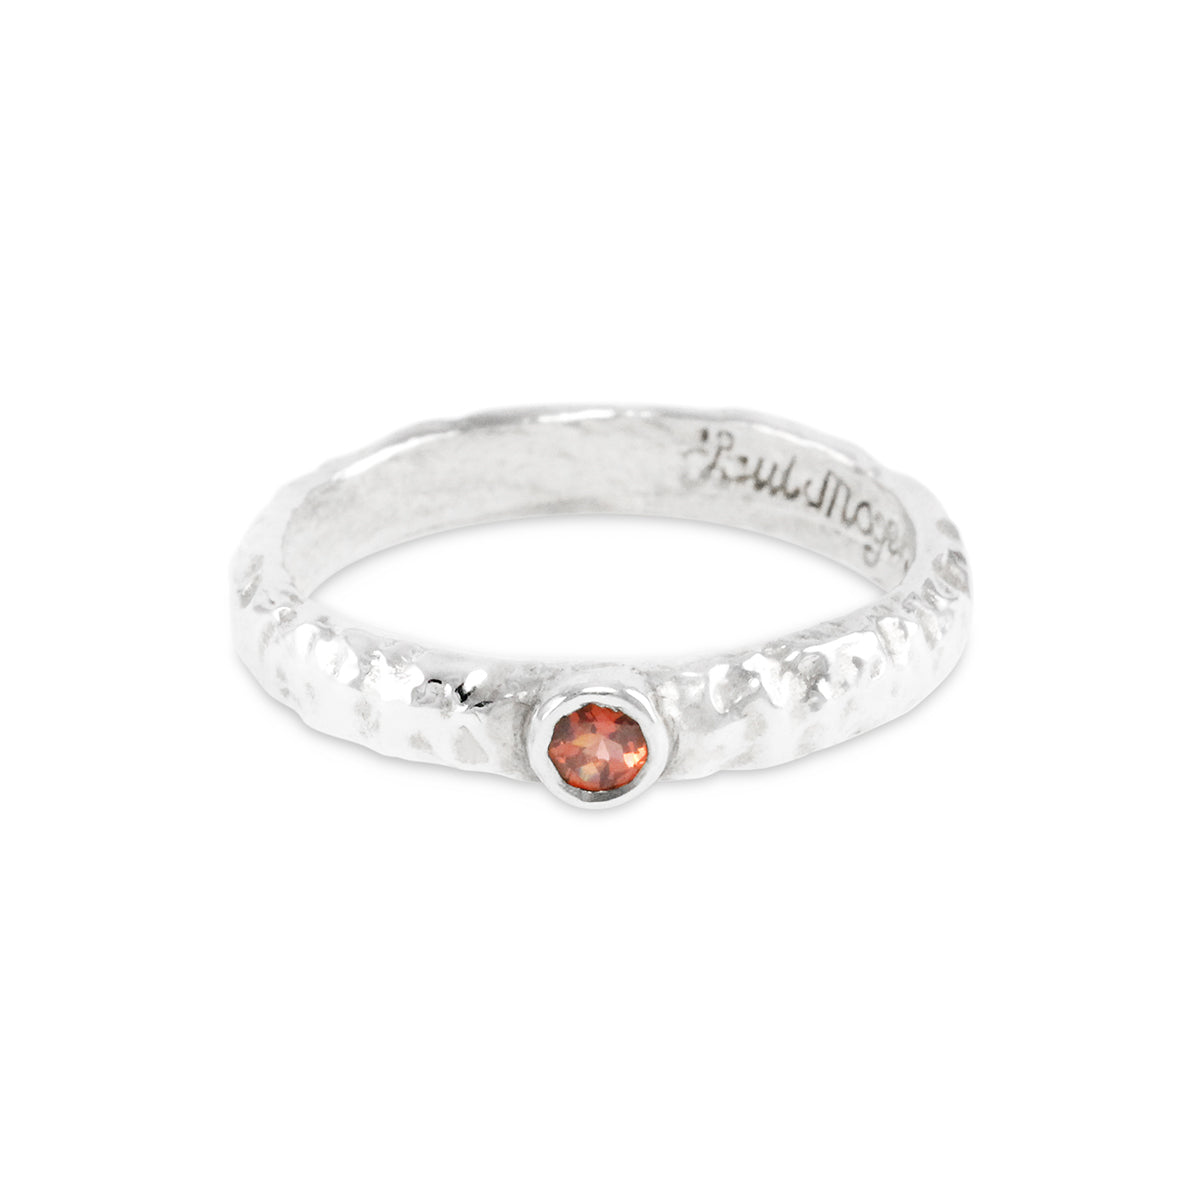 Garnet ring handmade in sterling silver featuring an organic texture. - Paul Magen